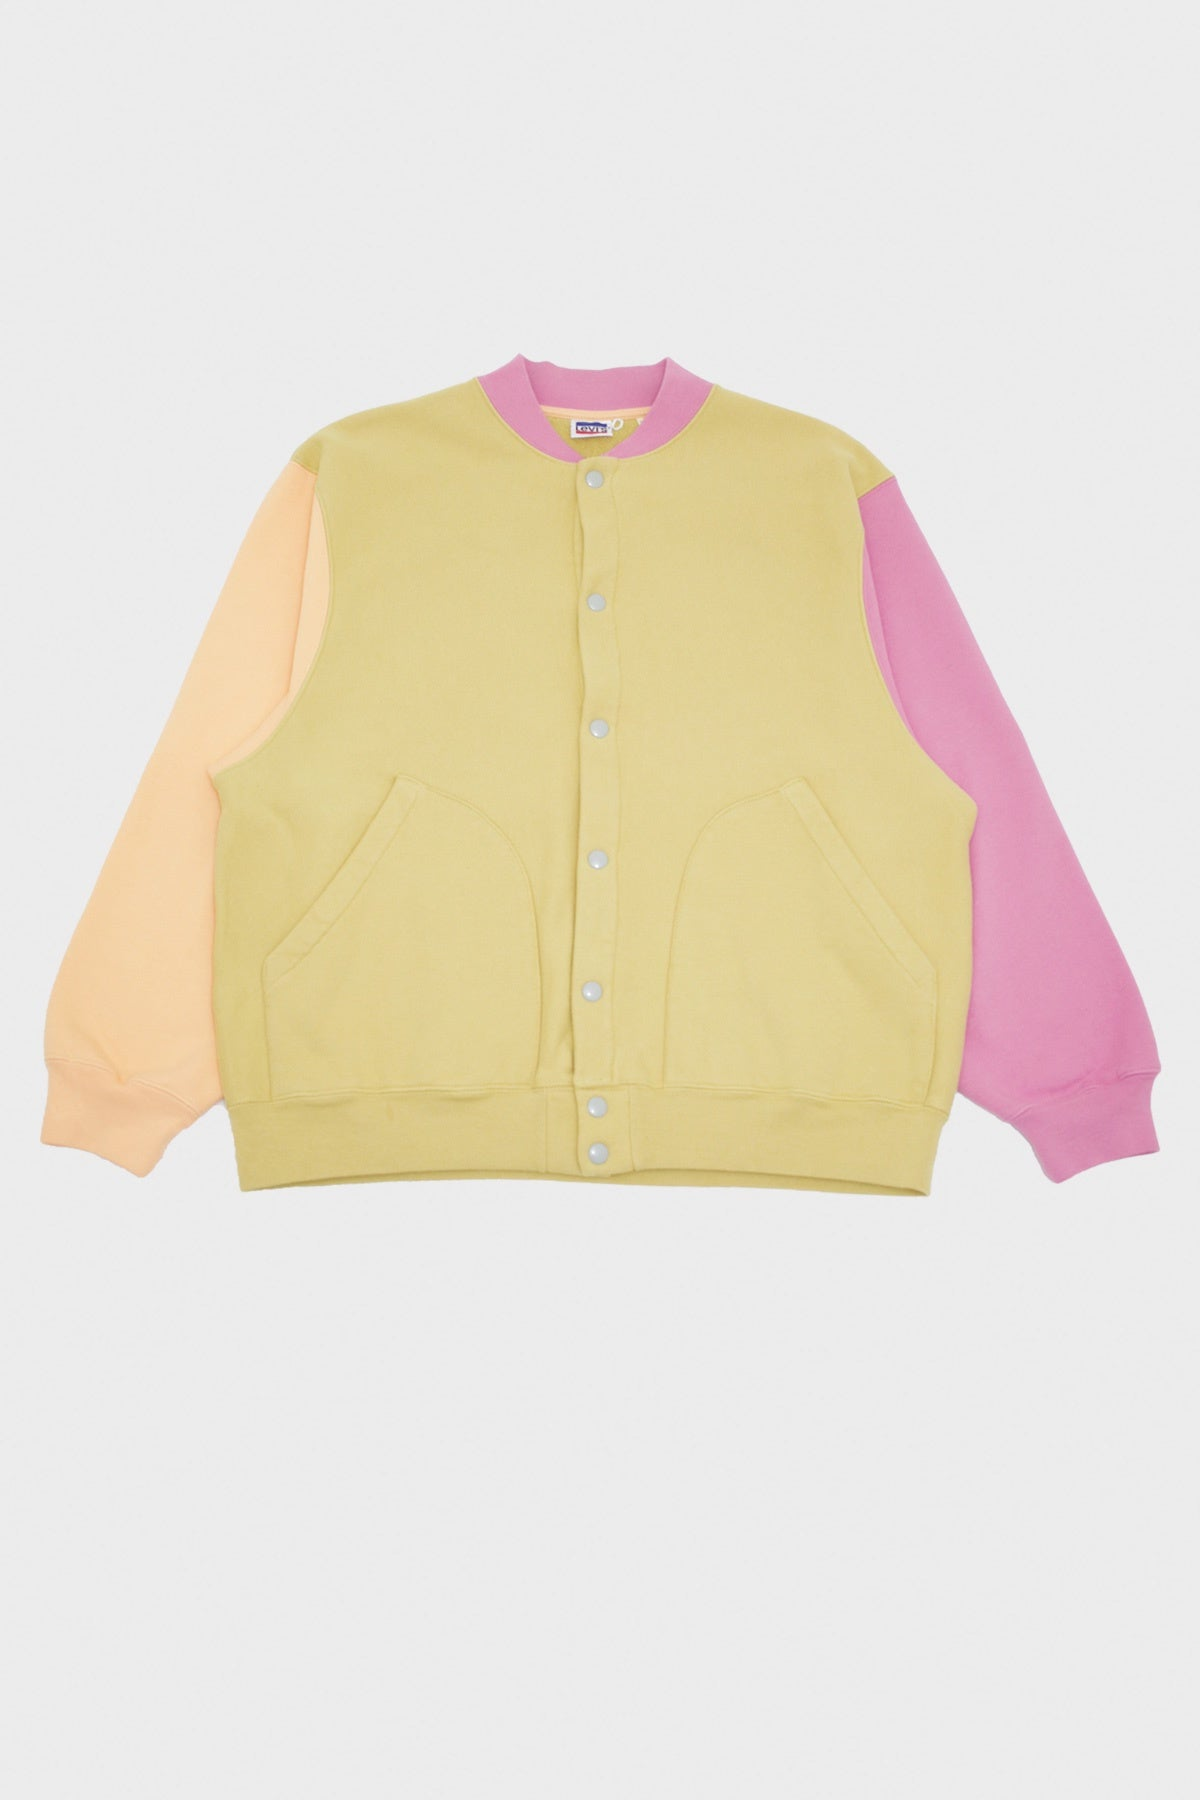 Levi's Vintage Clothing - Fleece Cardigan Jacket - Lemon Orange Pink & Tan - Canoe Club